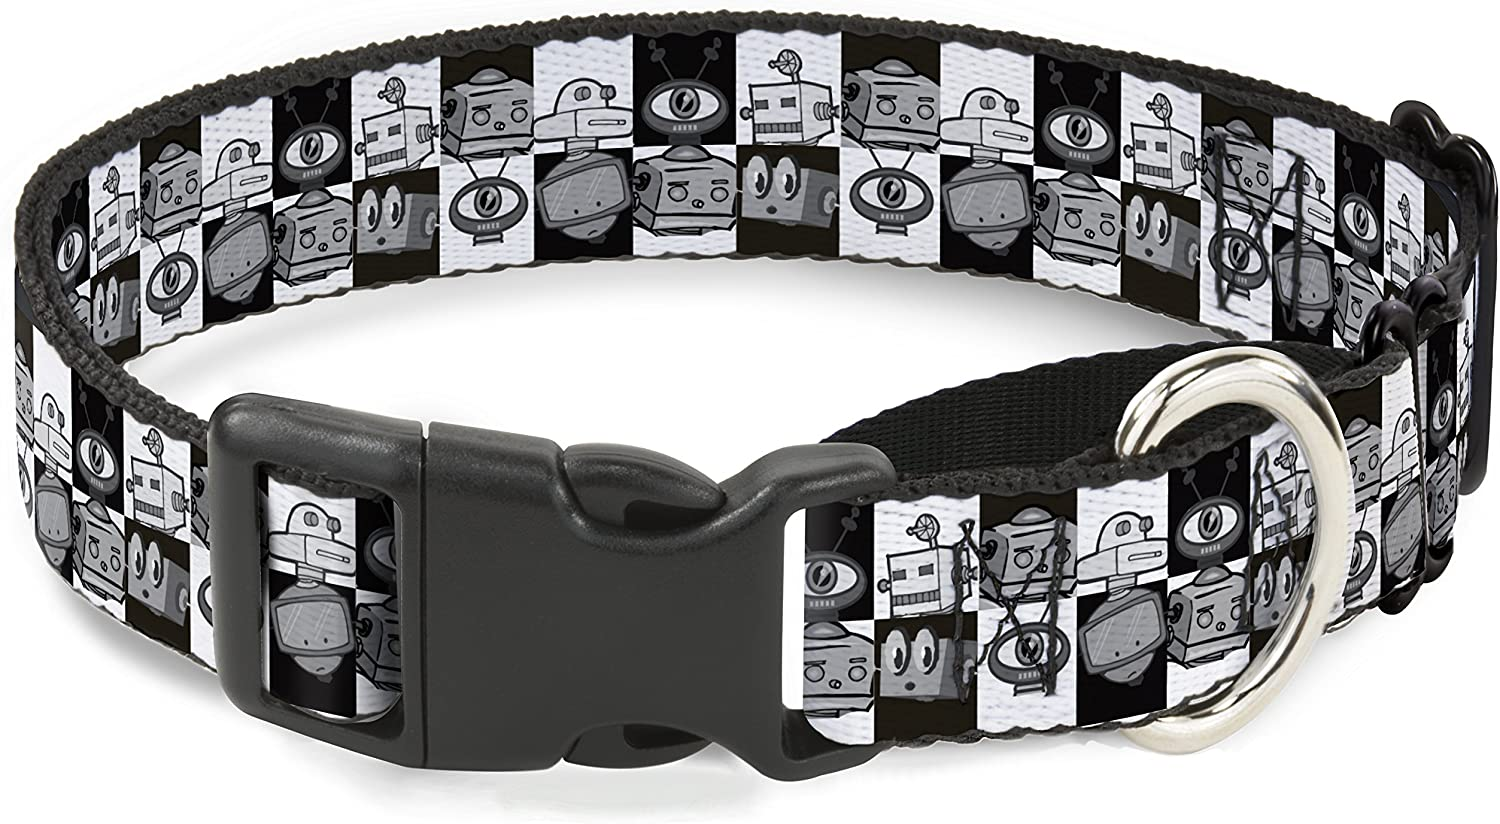 Buckle-Down Outlet SALE Robot Heads Checkers Black Cheap super special price Dog White Martingale Coll